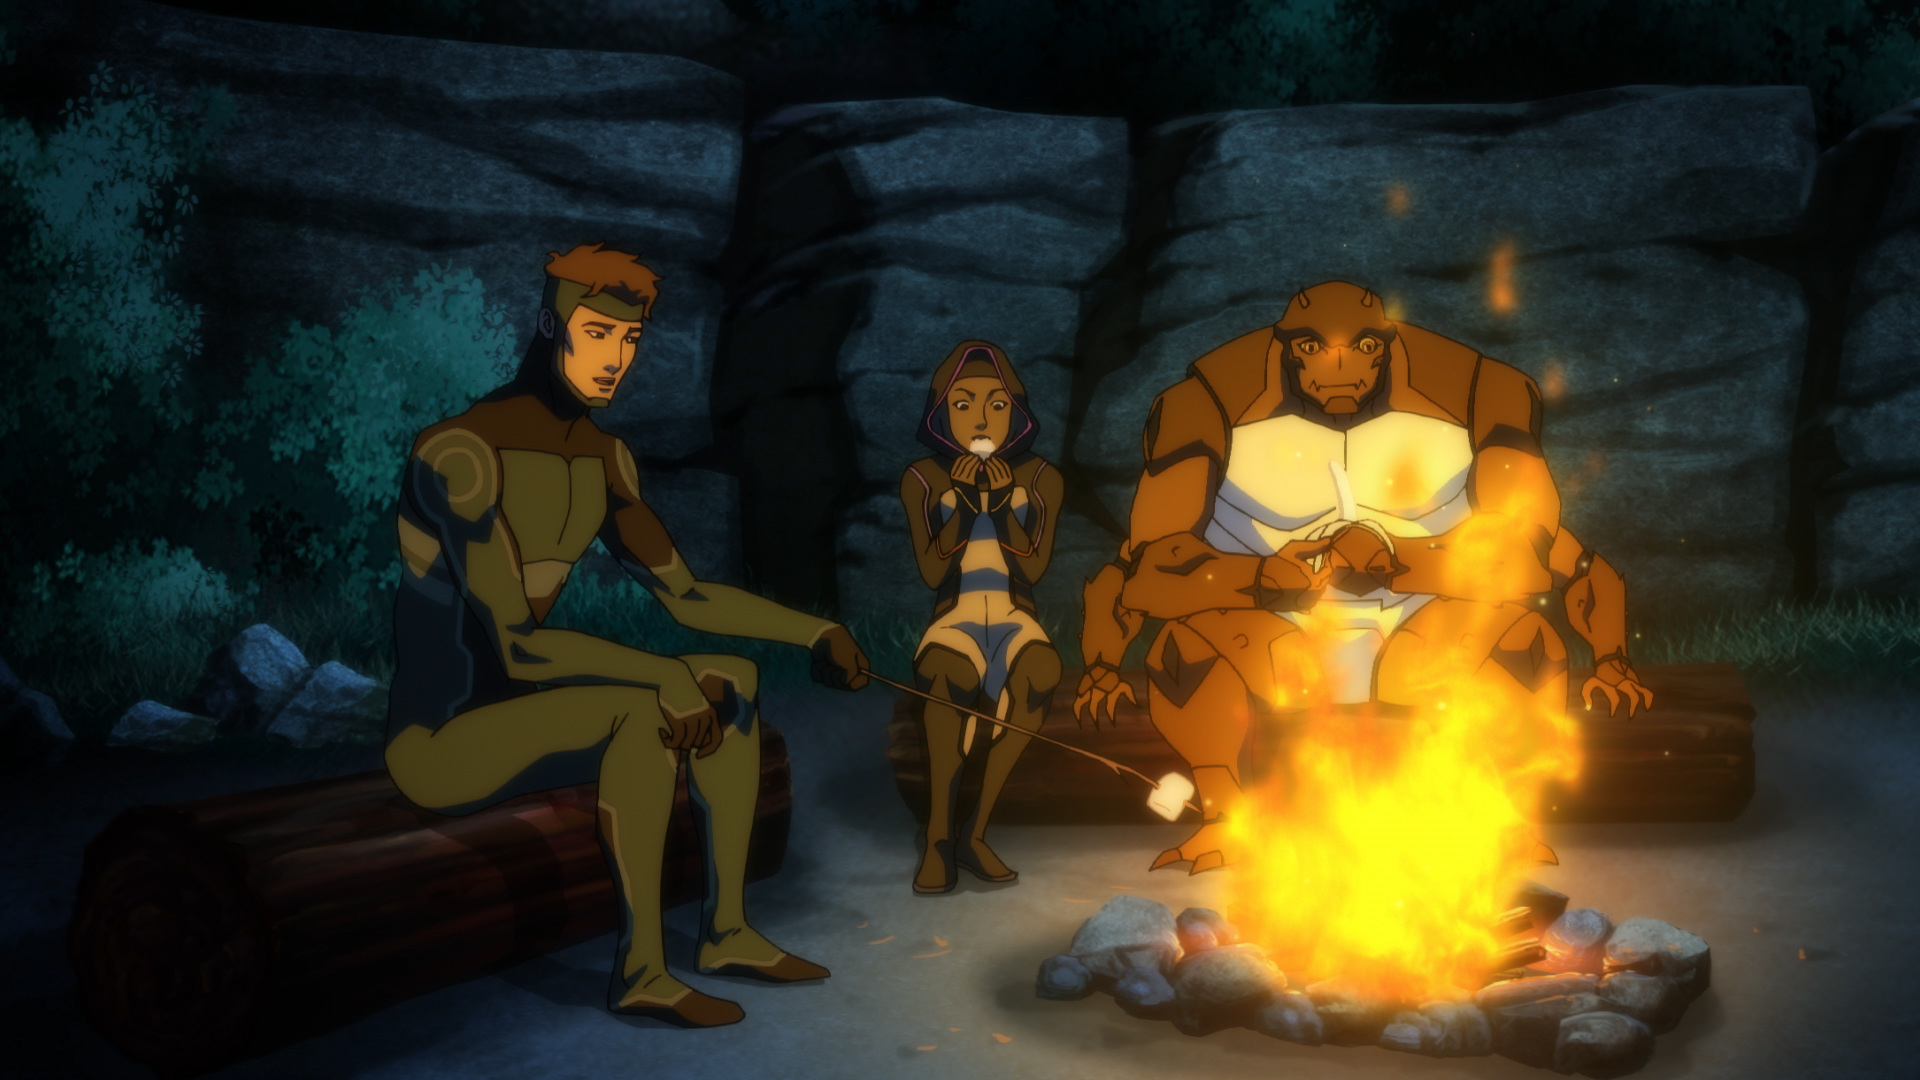 young justice season 1 download mp4